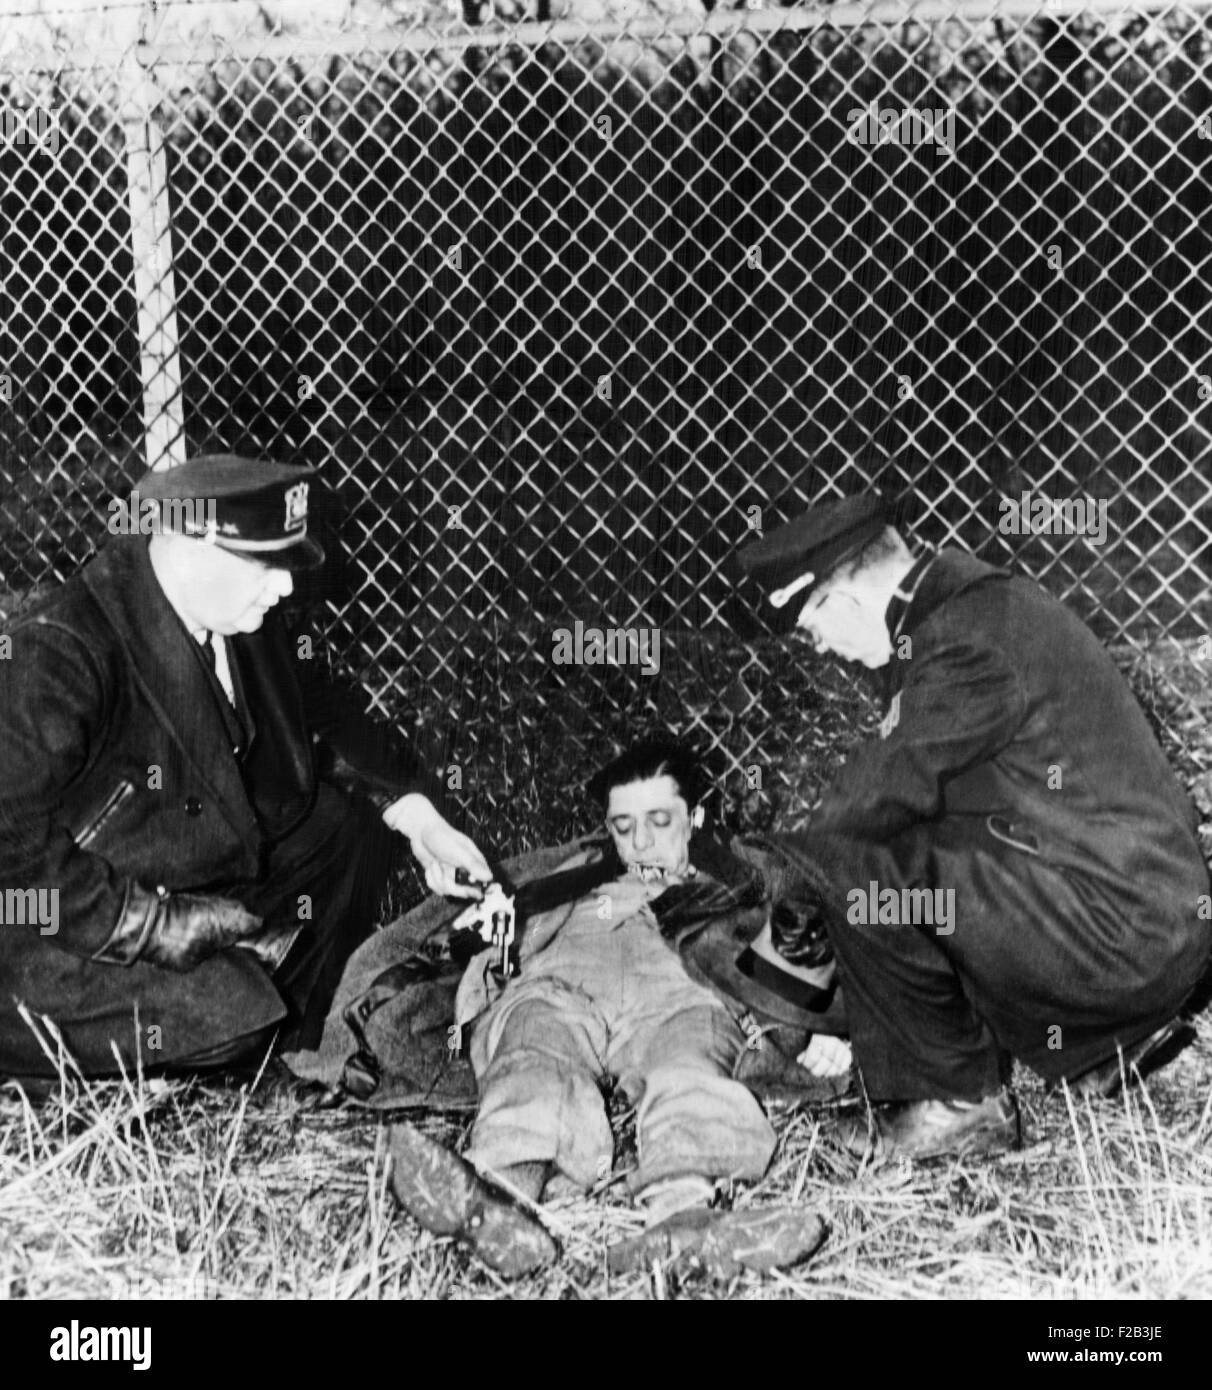 Police next the to dead body of Frank 'The Enforcer' Nitti. He committed suicide beside a railroad track - Stock Image